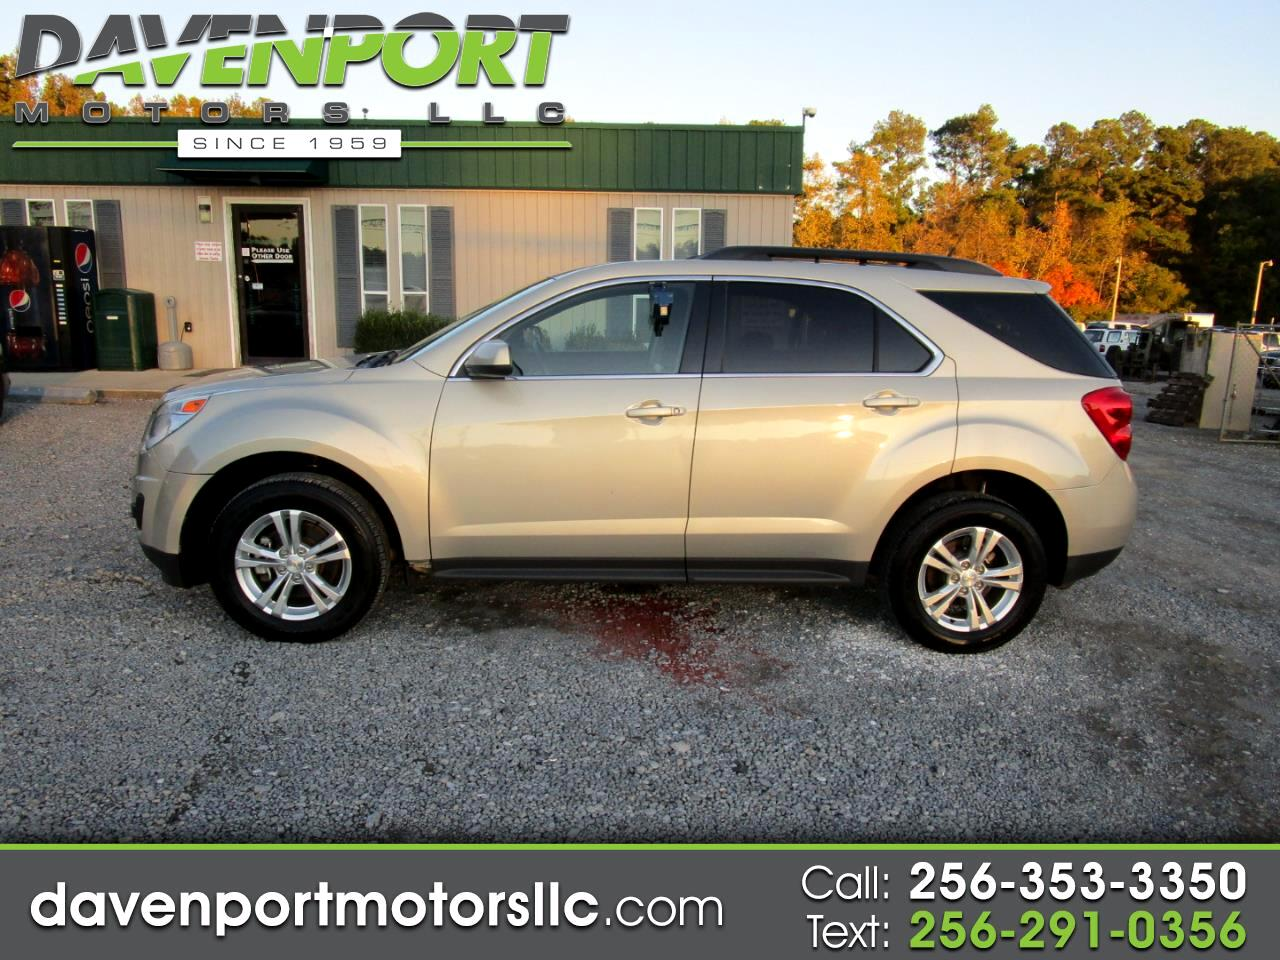 Used Cars Decatur Al >> Buy Here Pay Here Cars For Sale Decatur Al 35603 Davenport